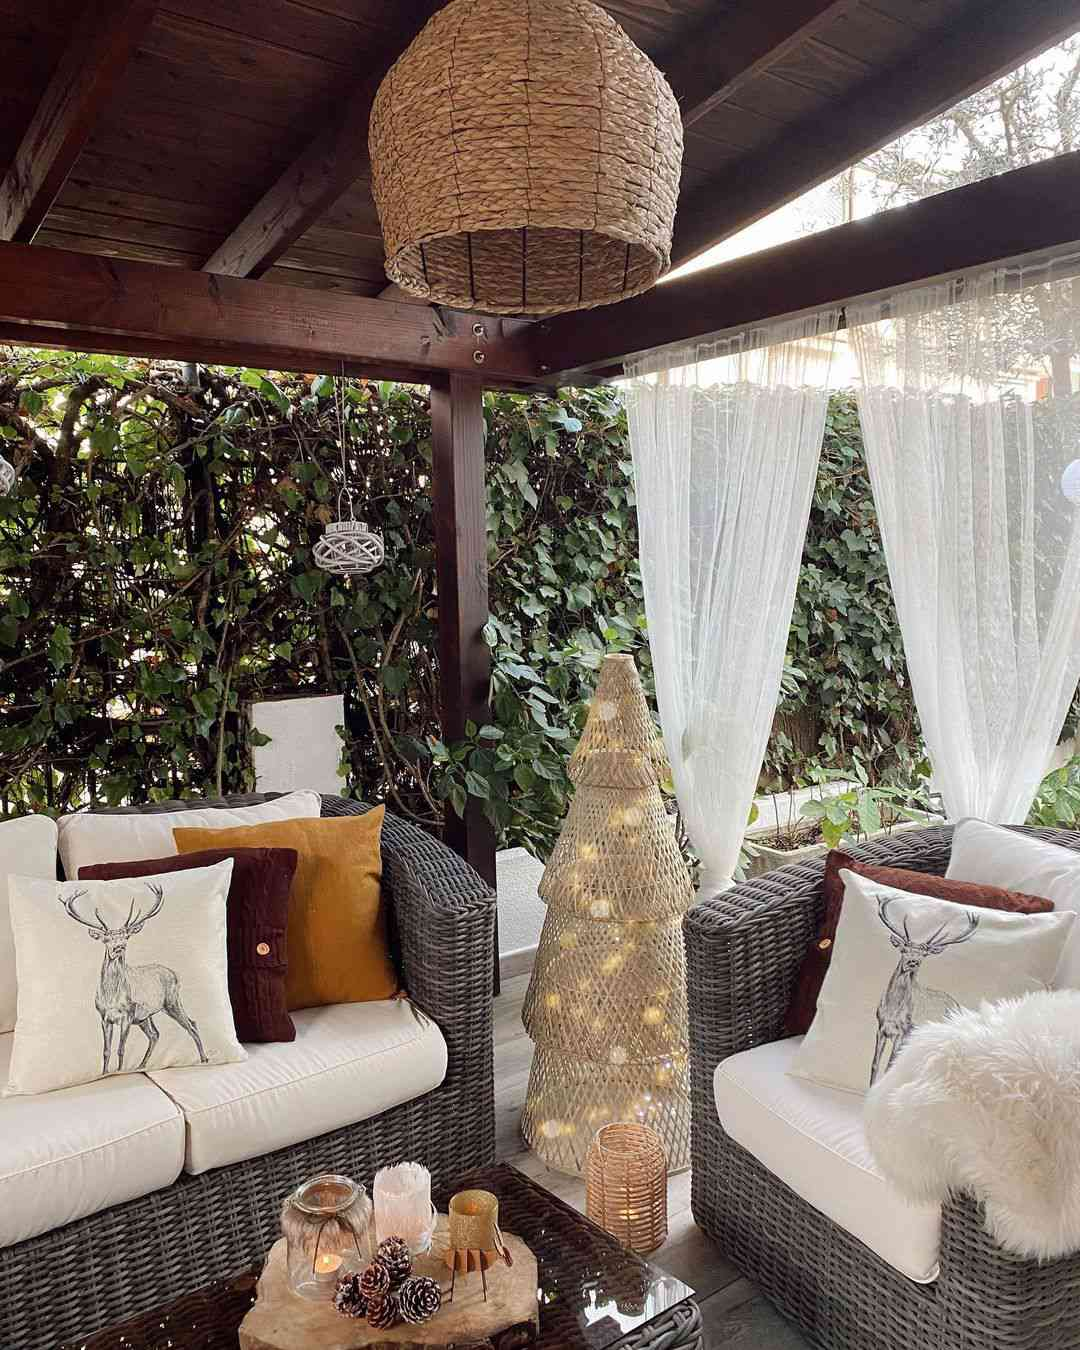 Patio with hanging curtains